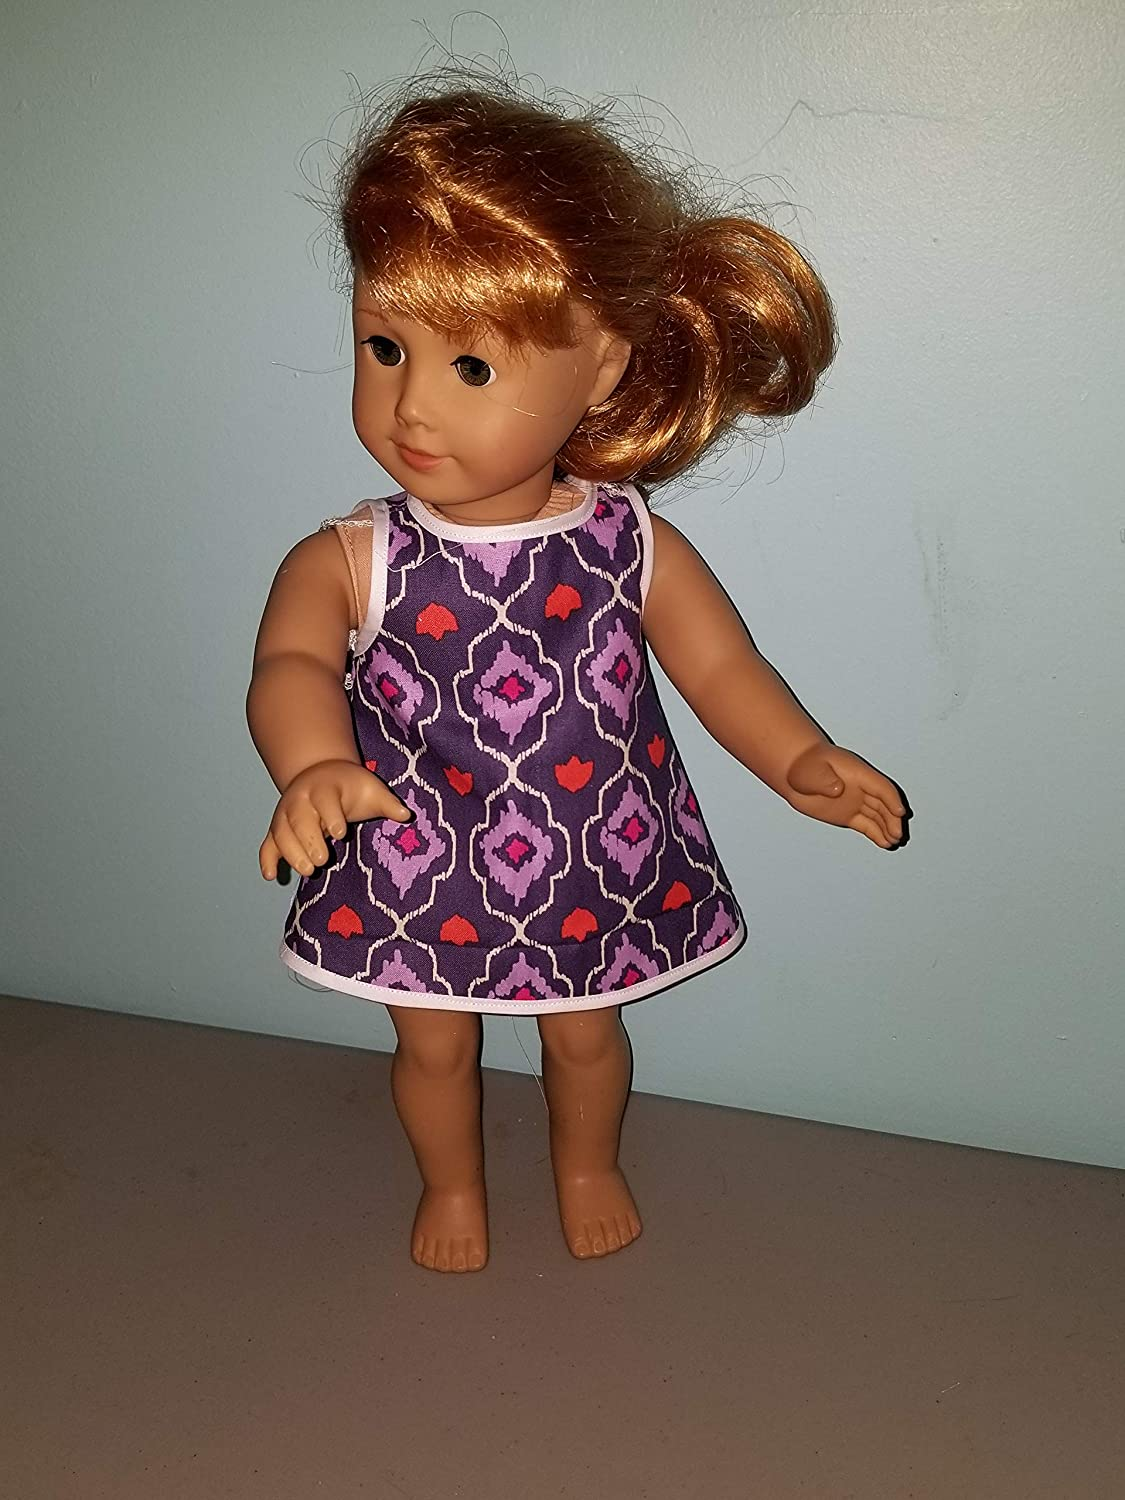 my life our generation 18 Doll Purple and White argyle Dress Retro fits American girl